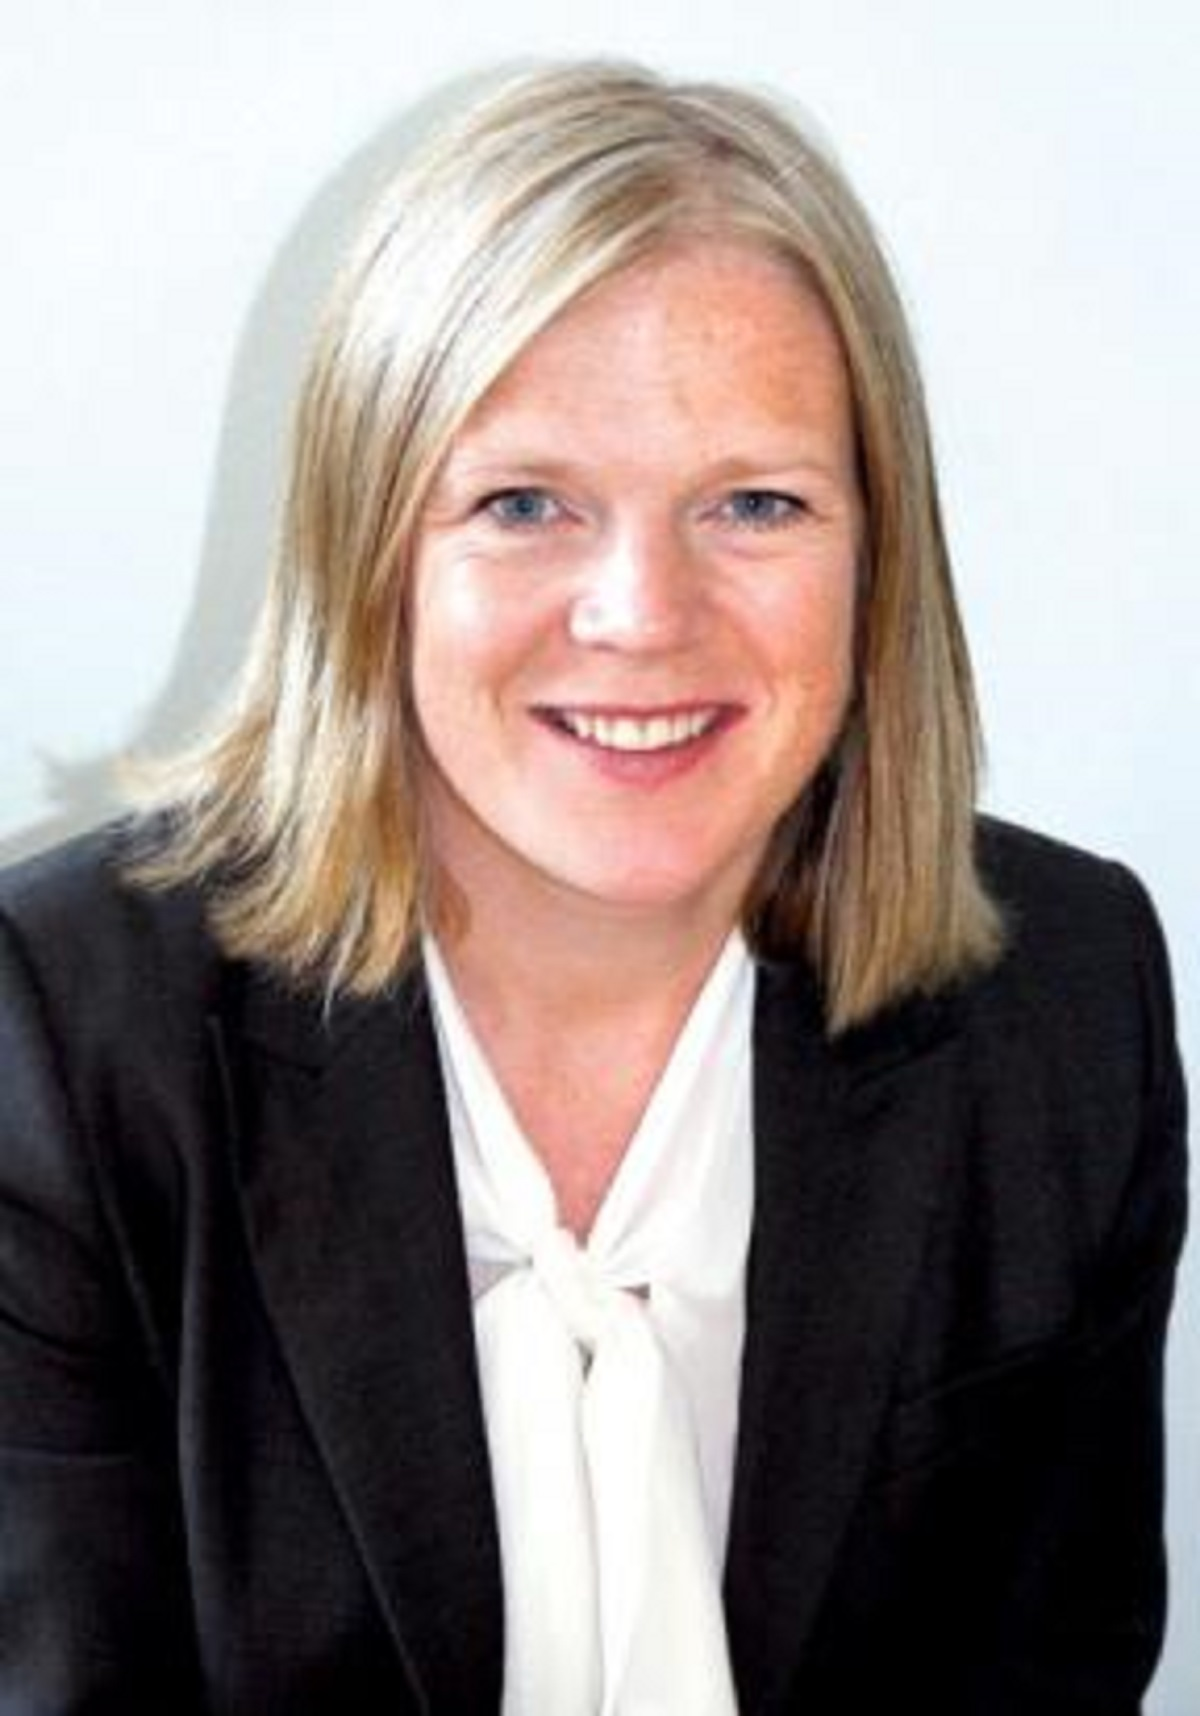 Clare Marchant, the incoming chief executive of Worcestershire County Council.